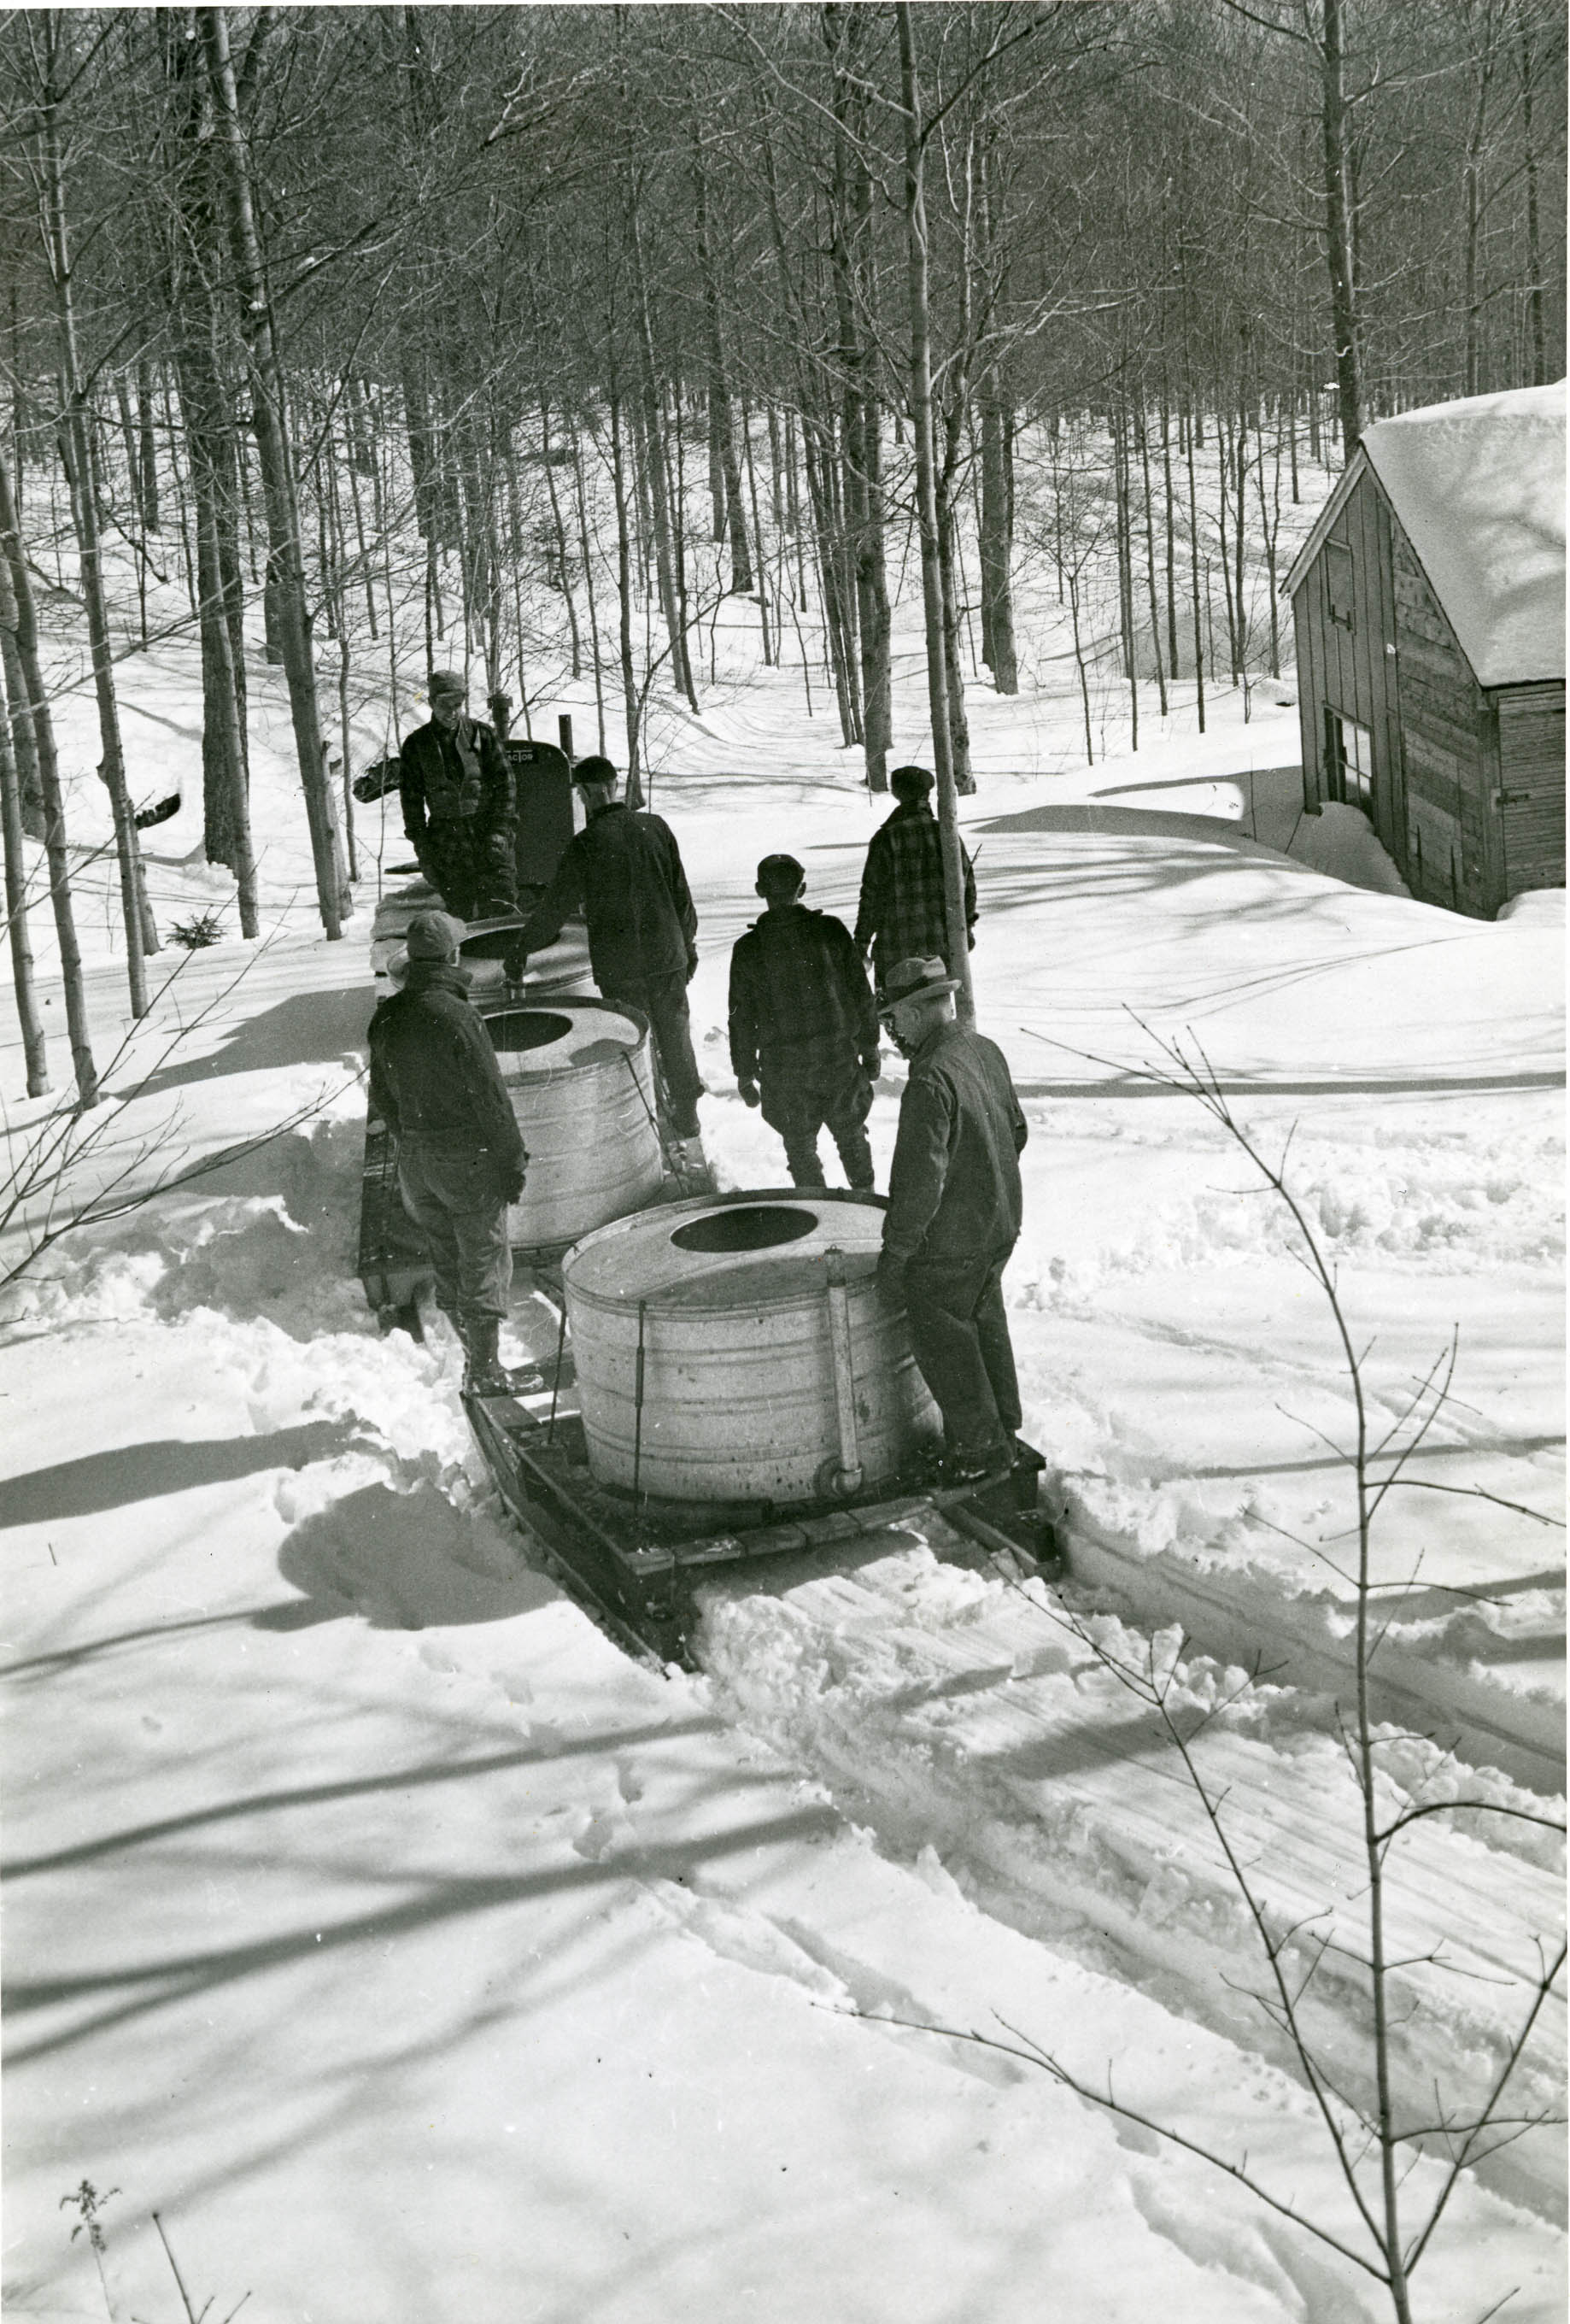 Collecting sap at Helenscourt [Photo, c. 1940s, courtesy of the Arthur D. Budd Papers. The Trustees of Reservations, Archives & Research Center]